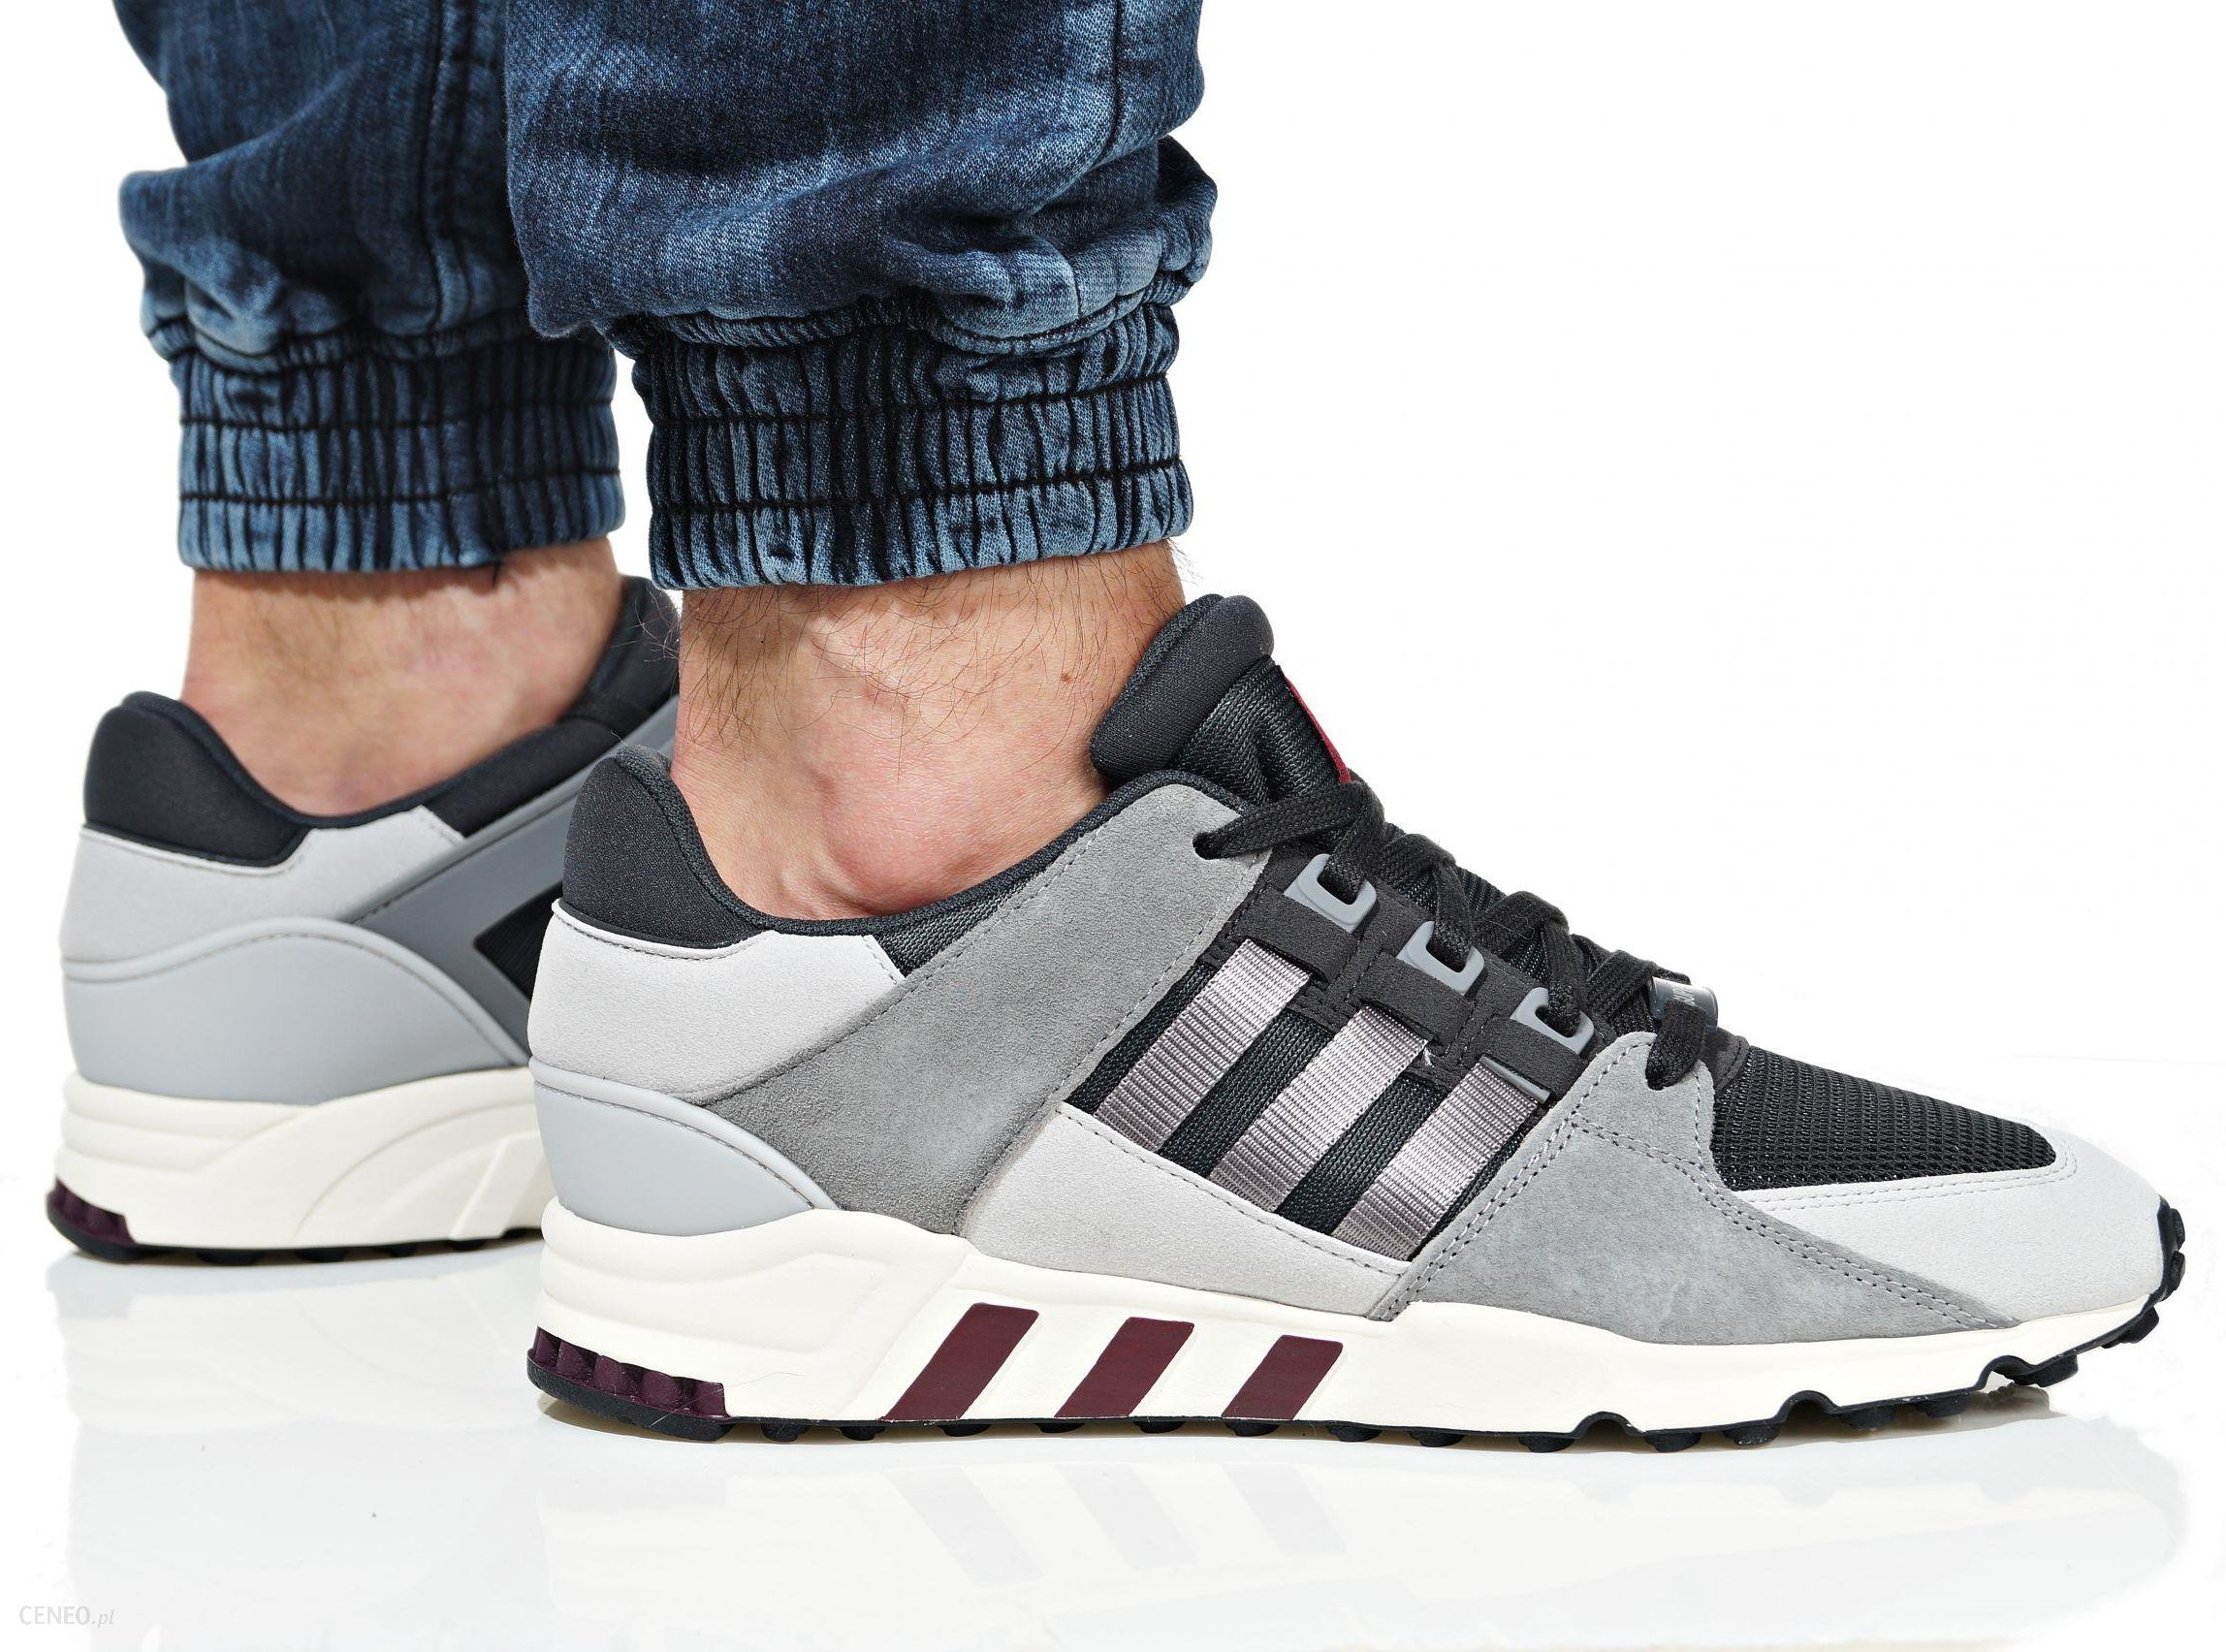 BUTY ADIDAS EQT SUPPORT RF CQ2420 Ceny i opinie Ceneo.pl